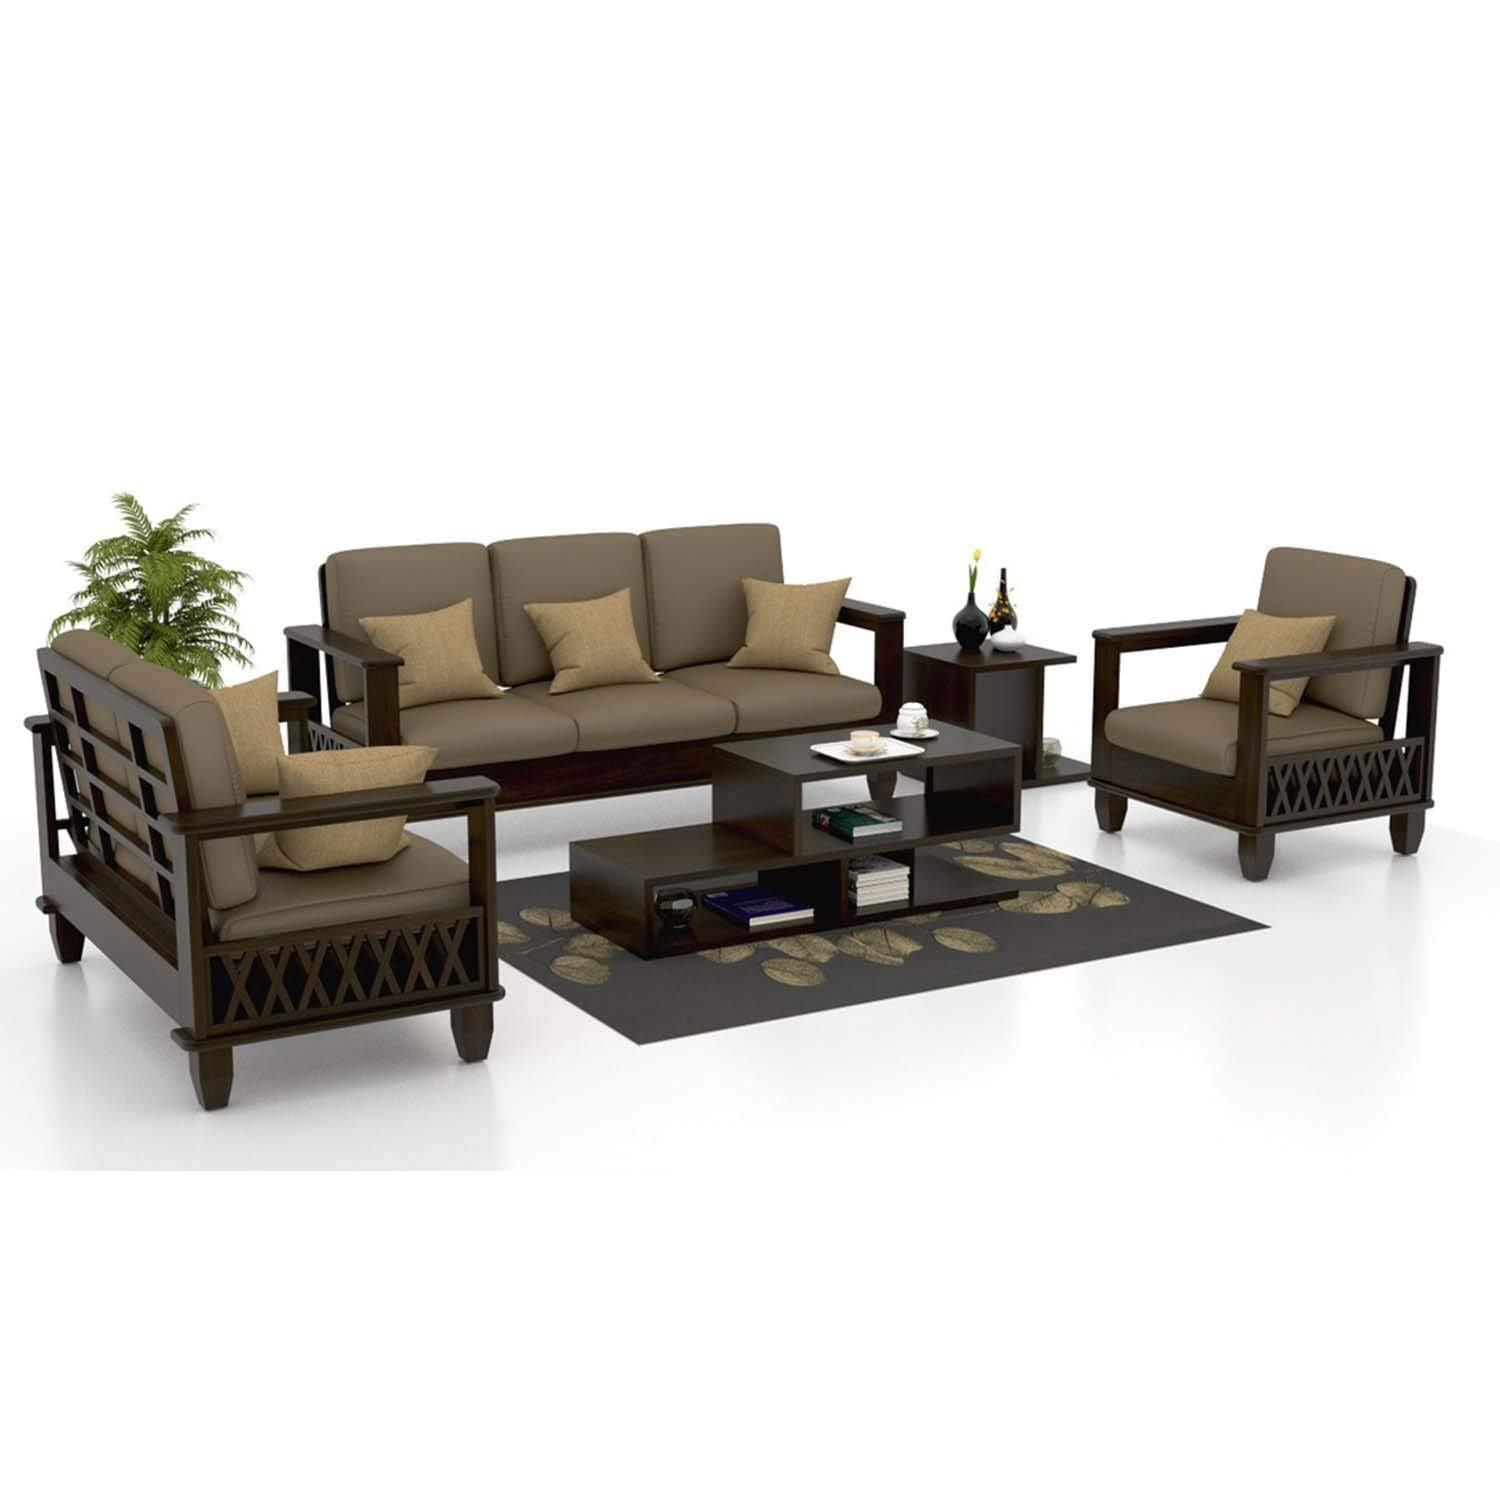 Renoot 5 seater sofa 3+1+1 Sofa Set Furniture for Living Room Walnut Dark Brown